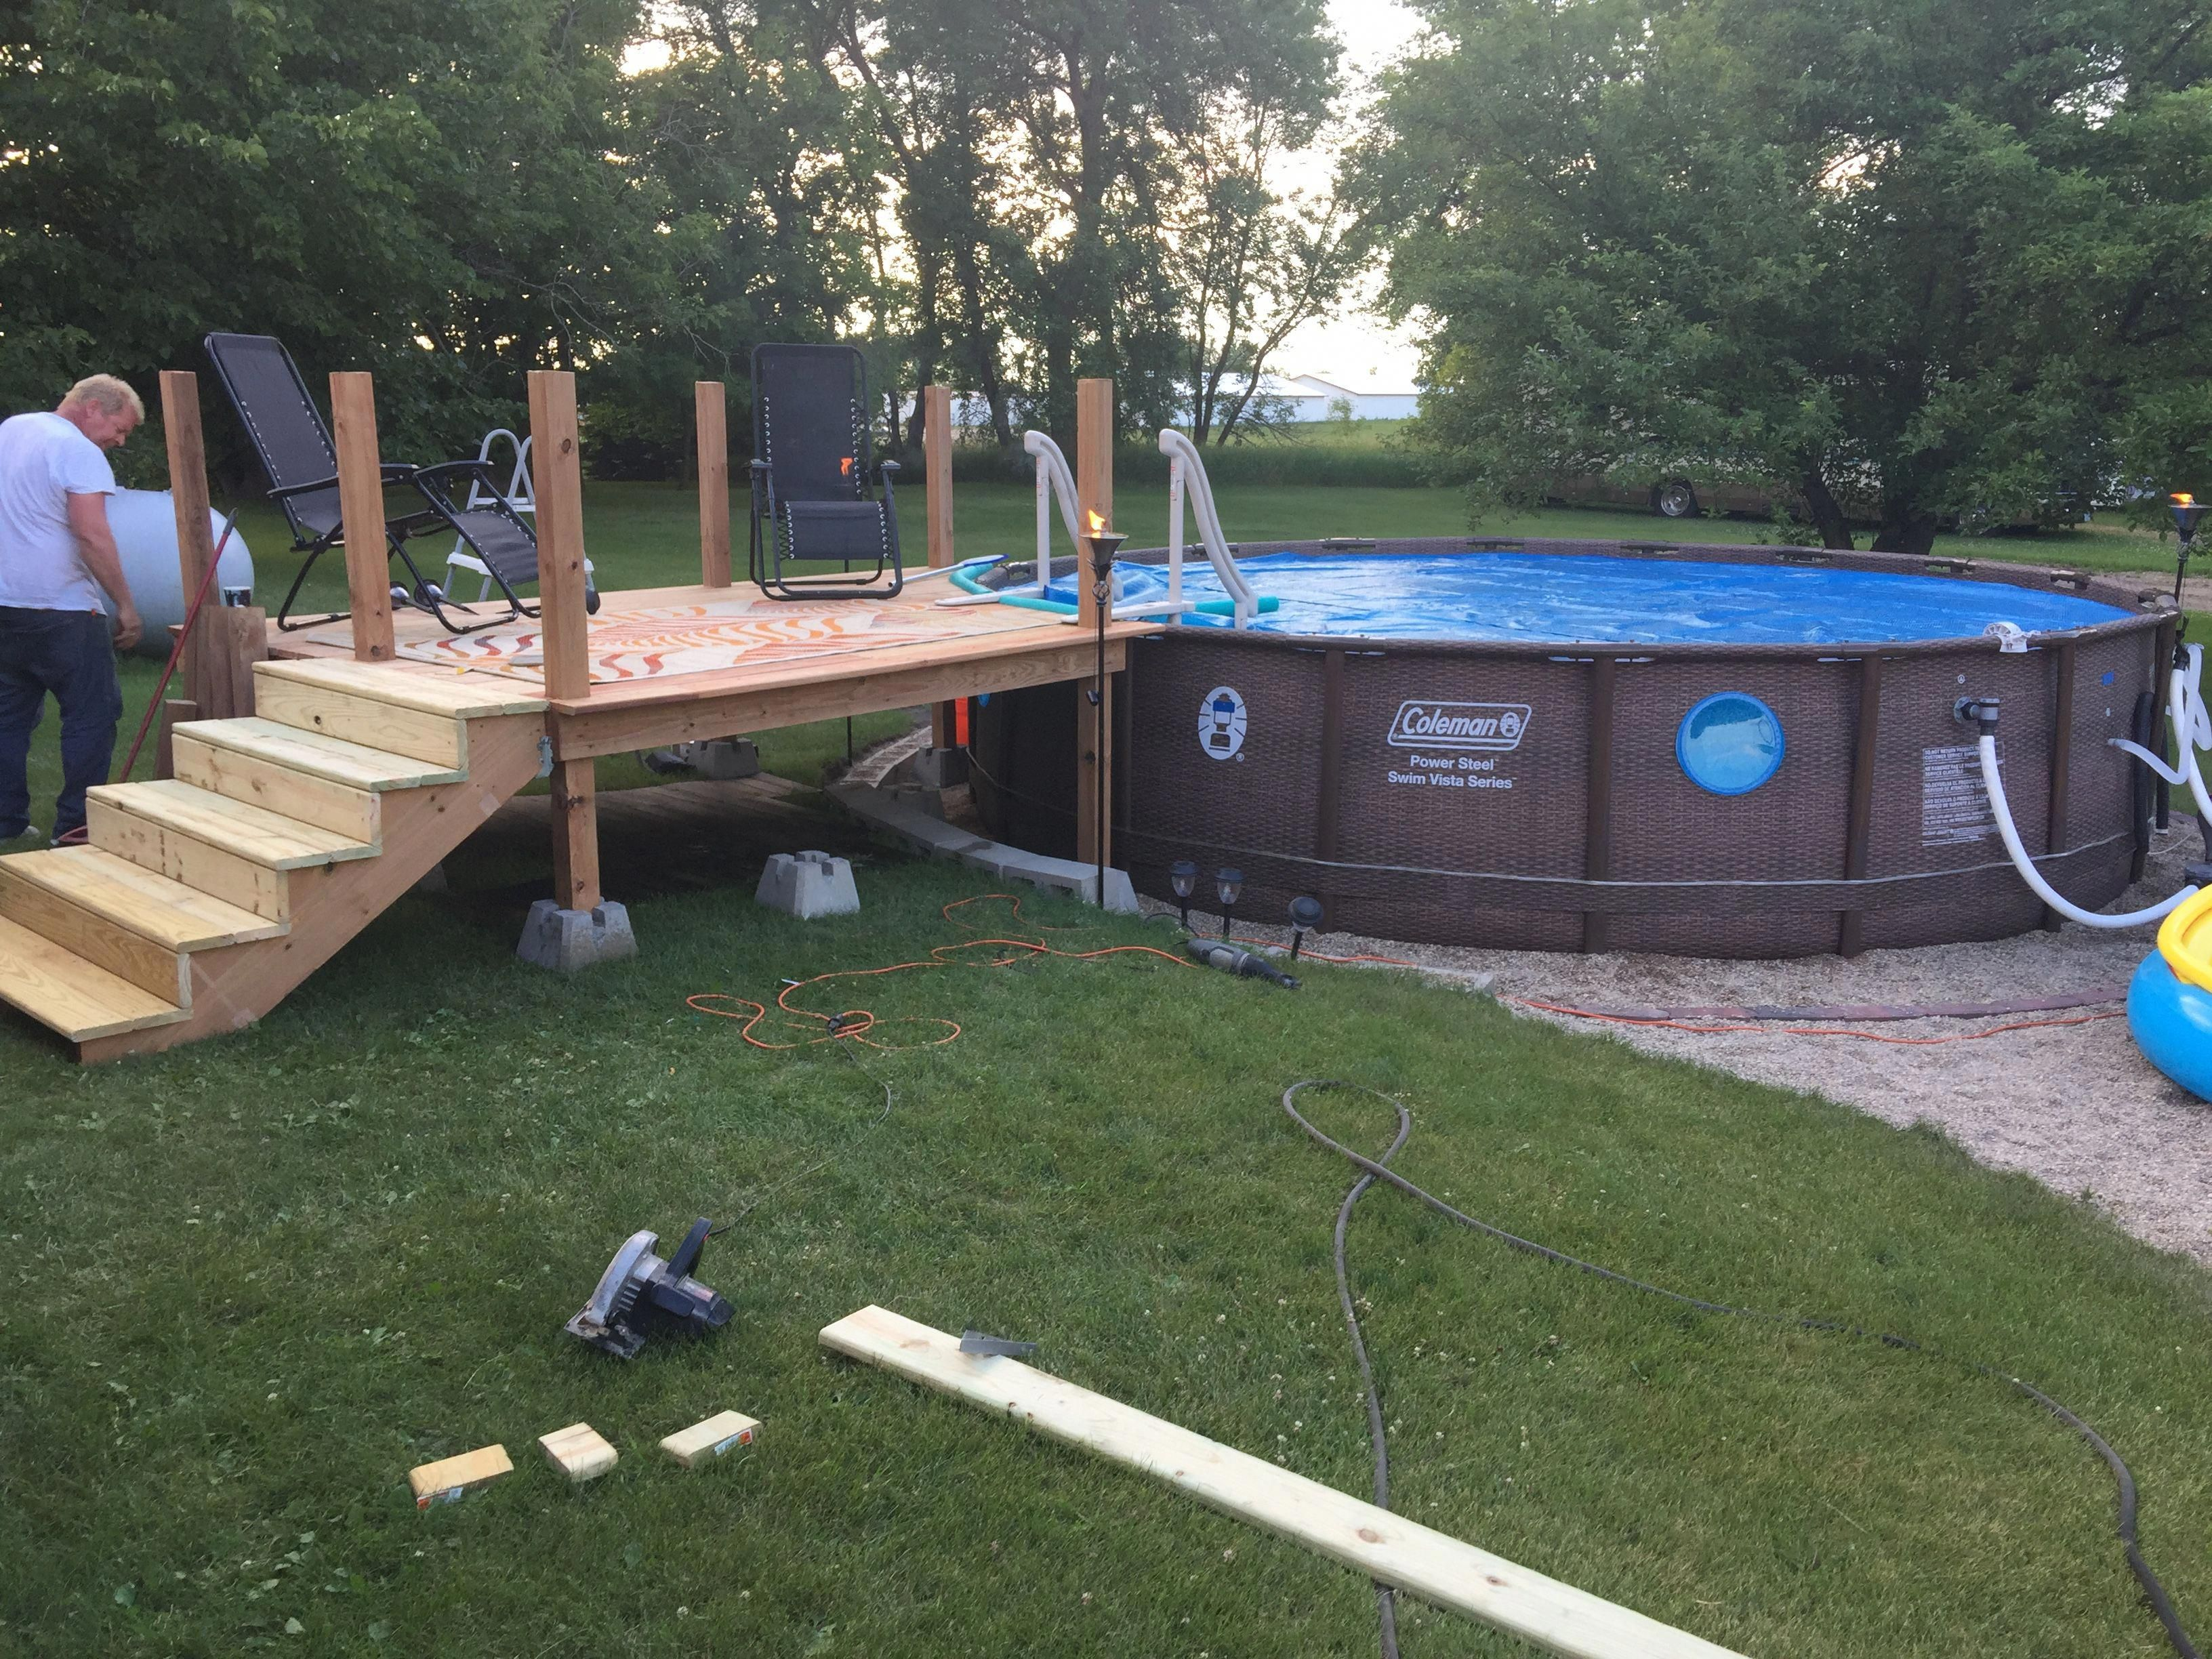 Pin by Tricia Tavares on DIY! Above ground pool